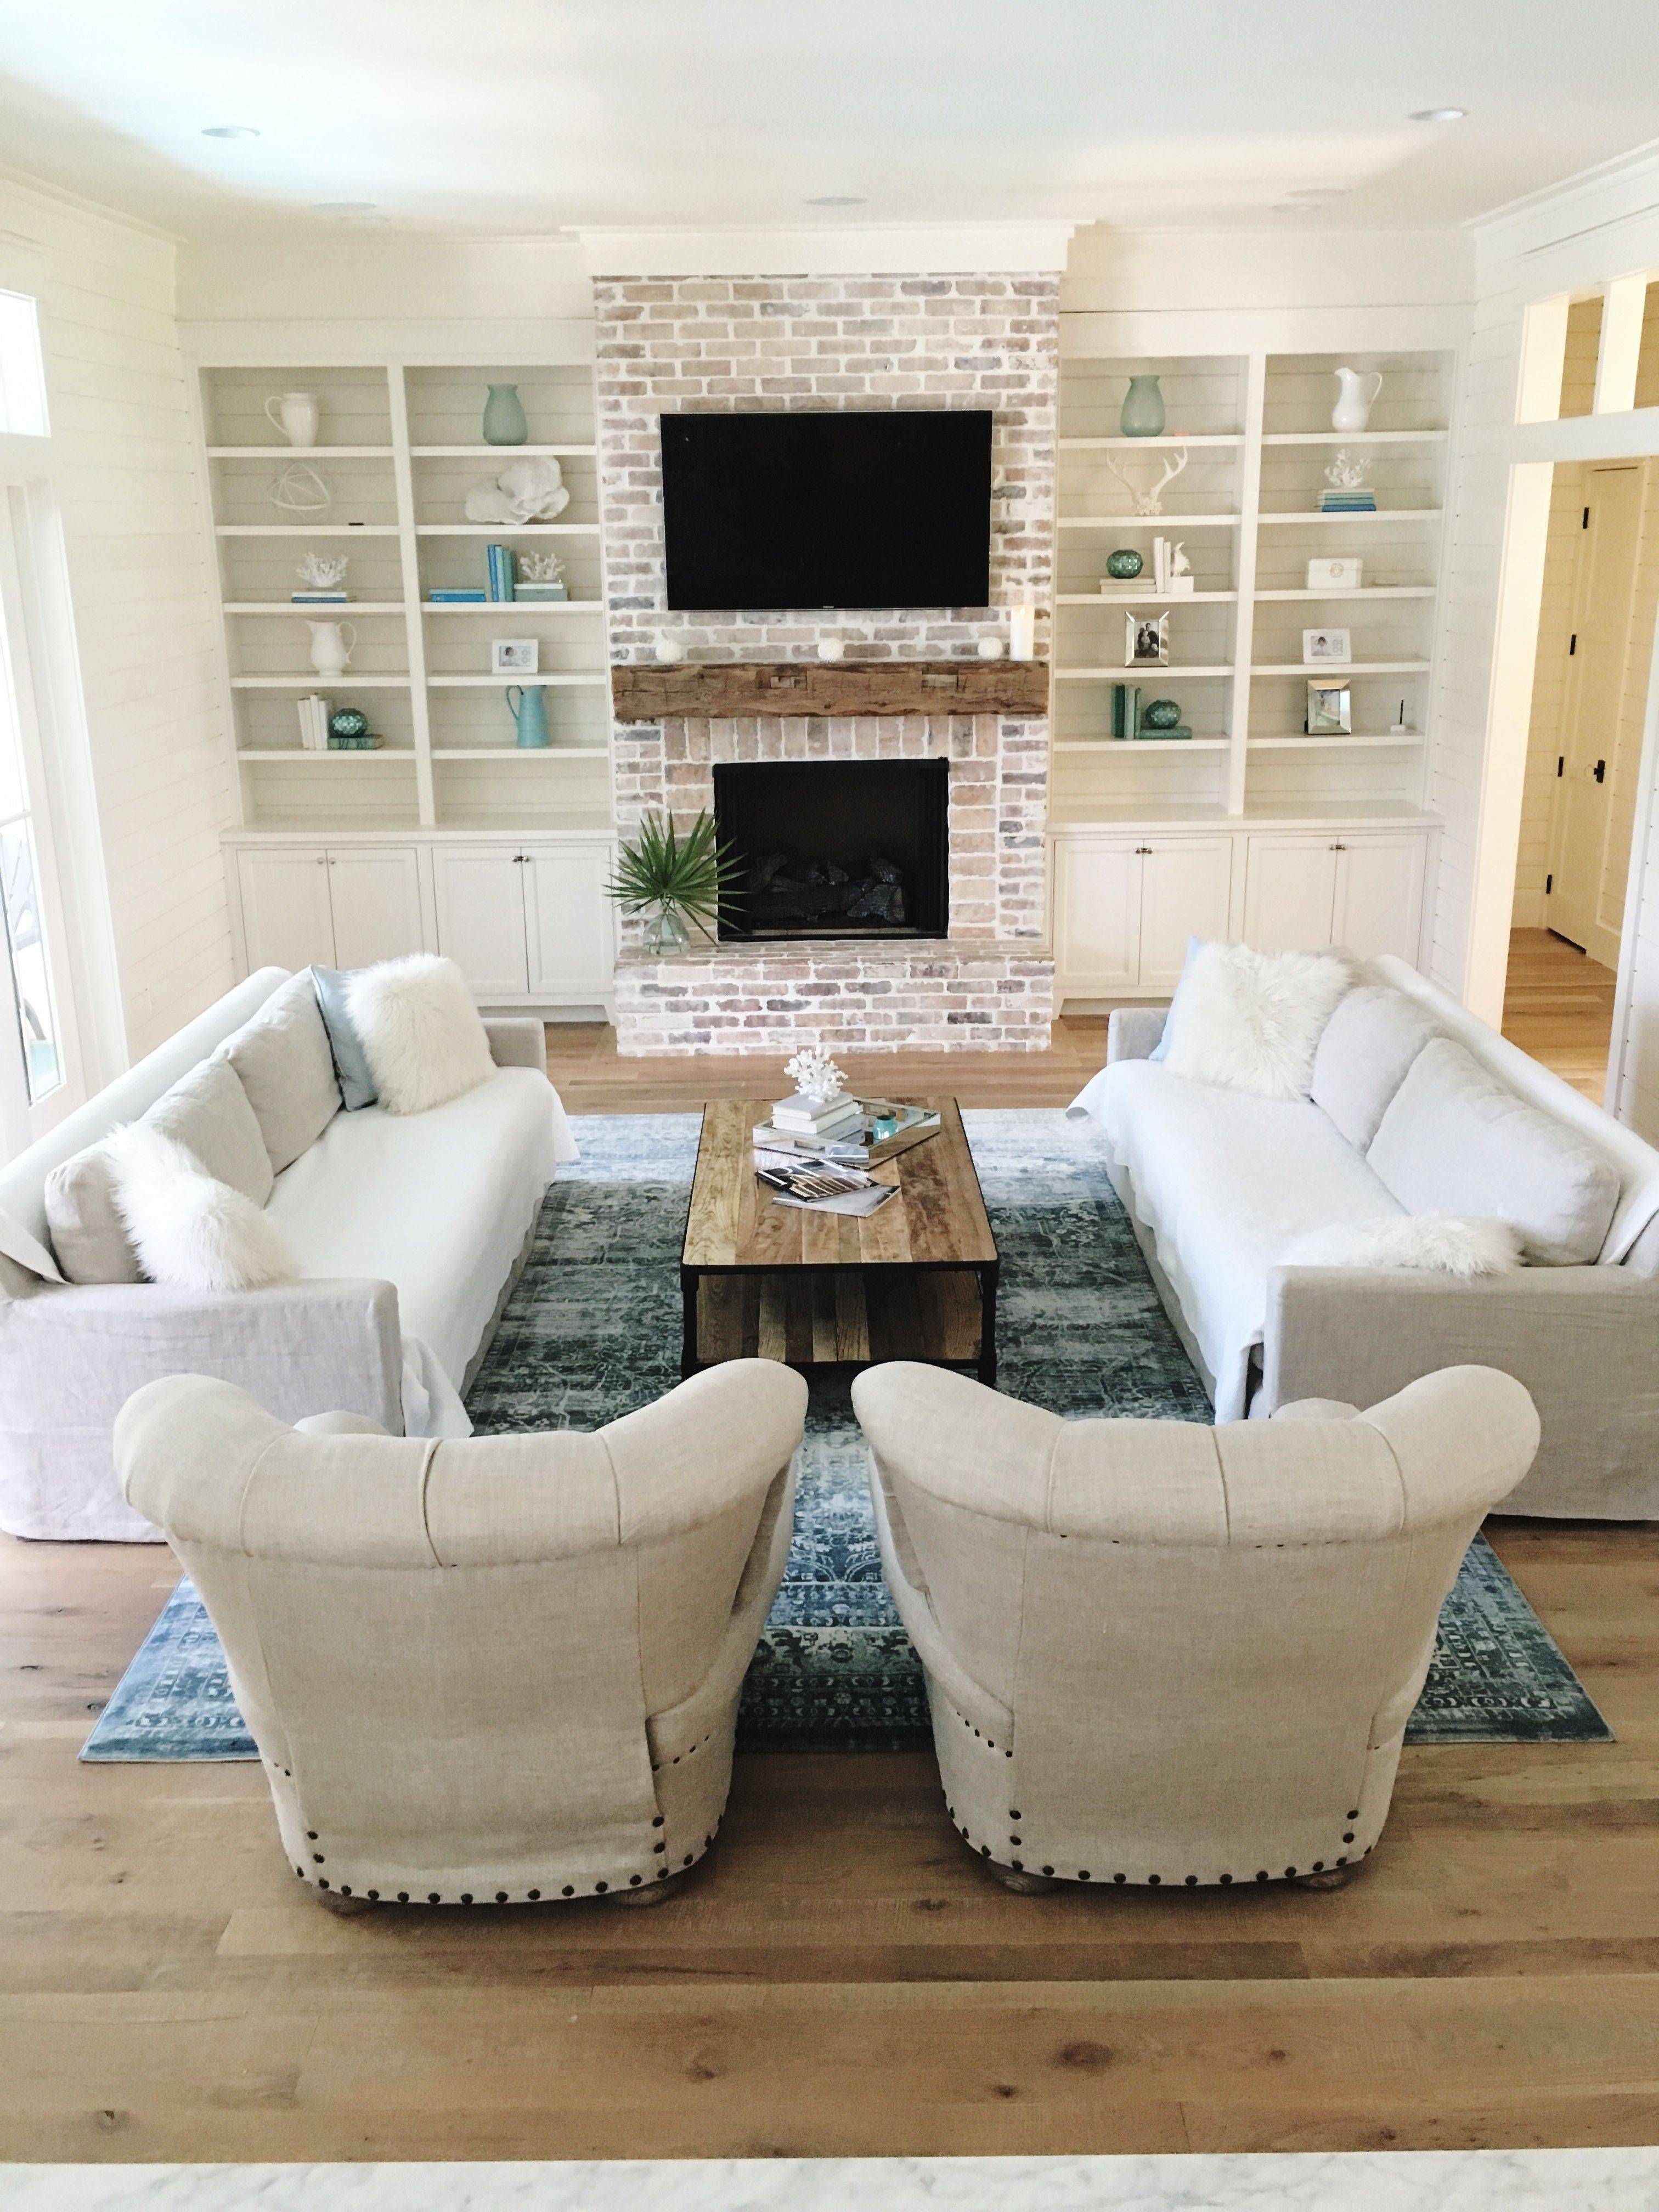 home decor ideas living room dream houses interiors new 20 cozy corner fireplace ideas for your living room of home decor ideas living room dream houses interiors